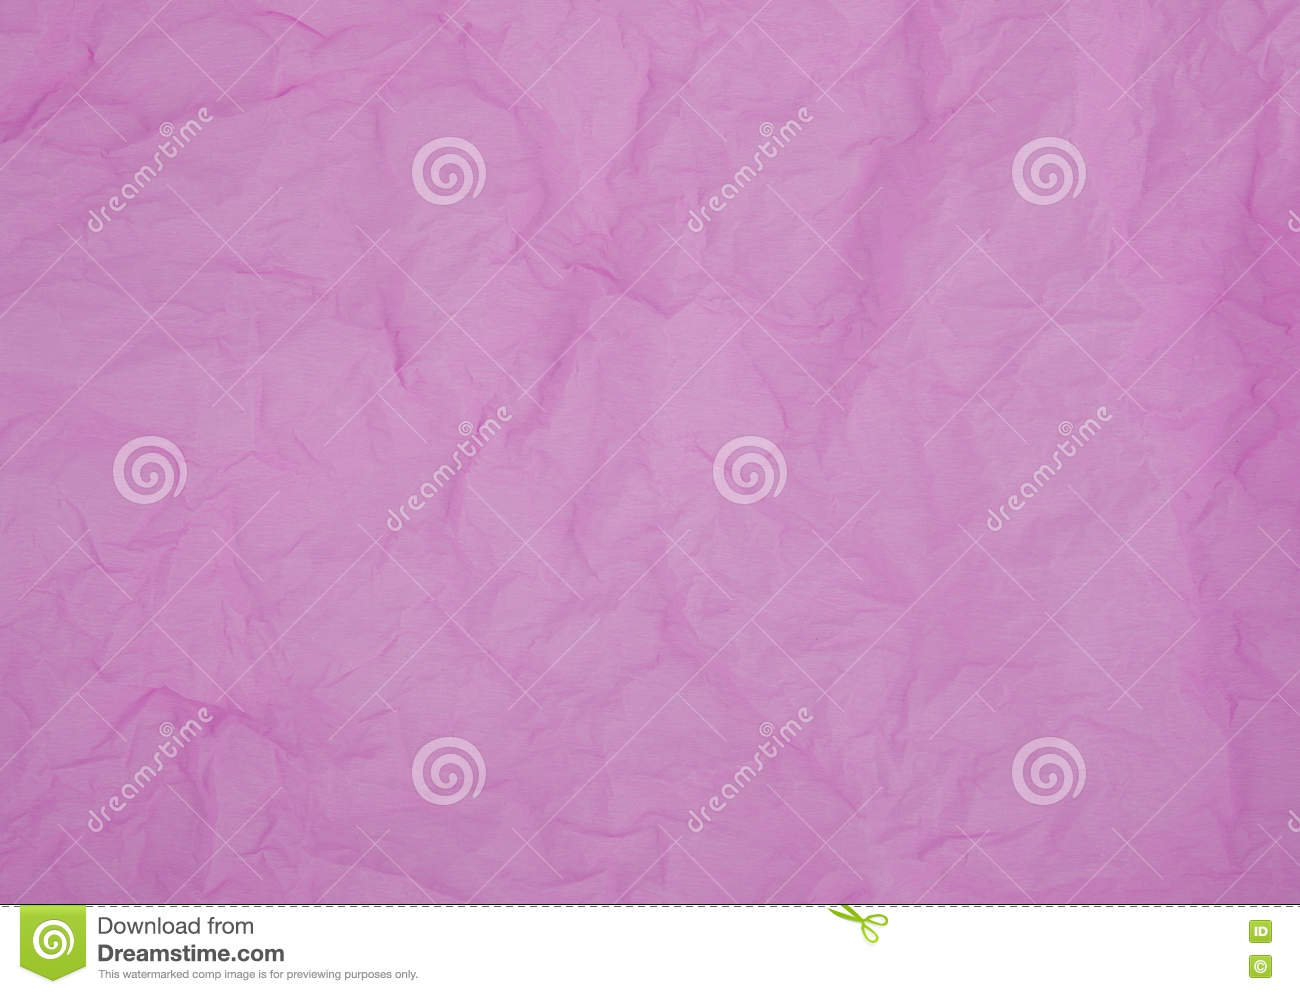 Crumpled Paper Pink Stock Photo | CartoonDealer.com #83350176